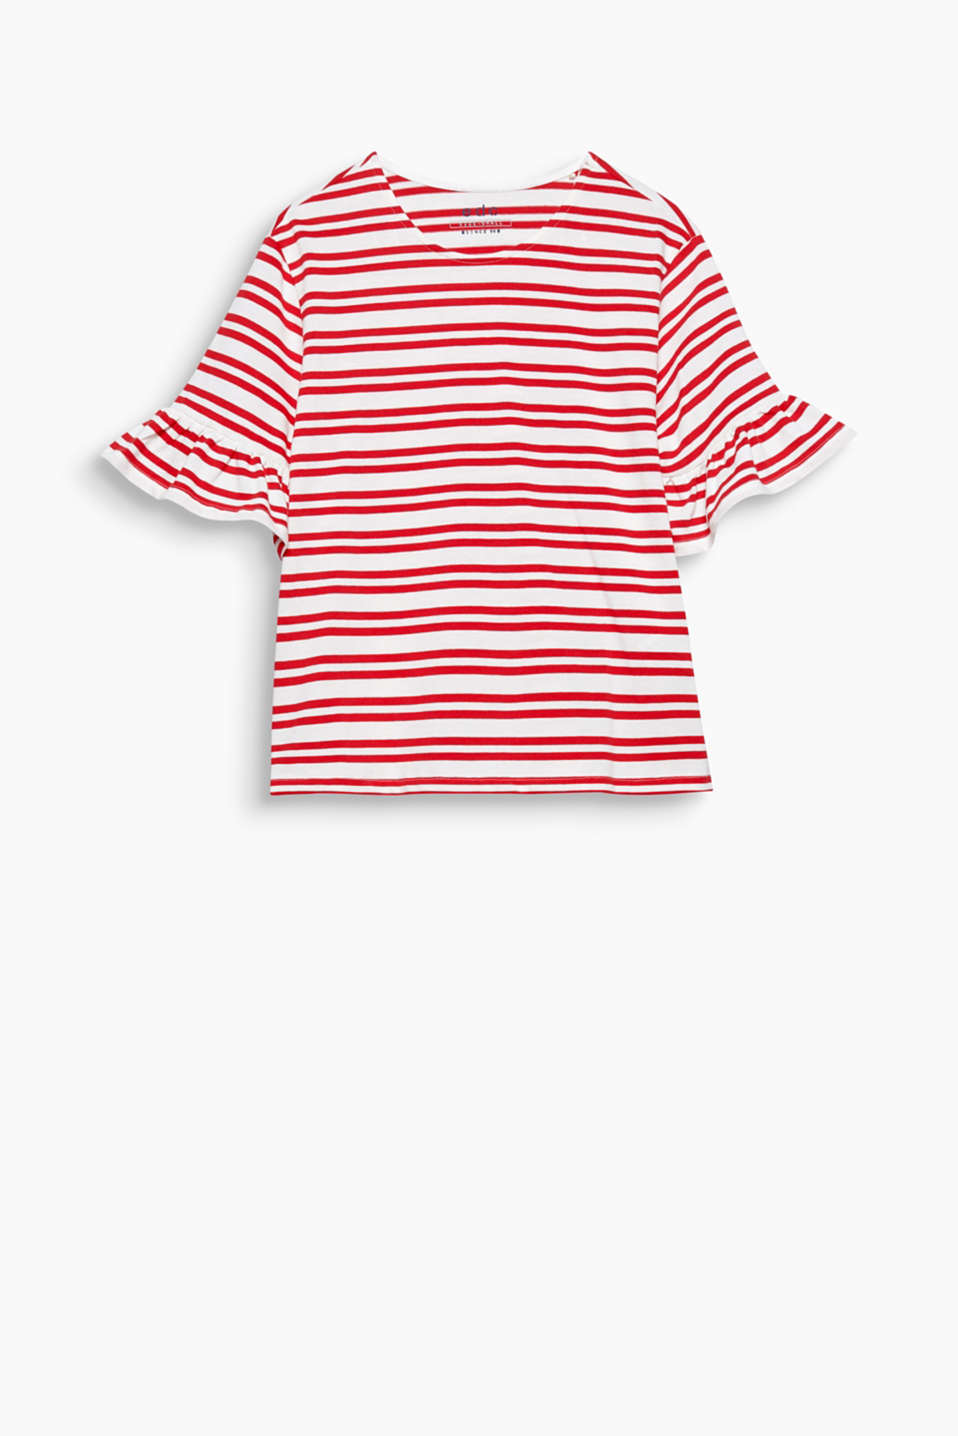 T-shirt with a round neckline and flounces on the sleeve ends in 100% cotton with a nautical striped pattern